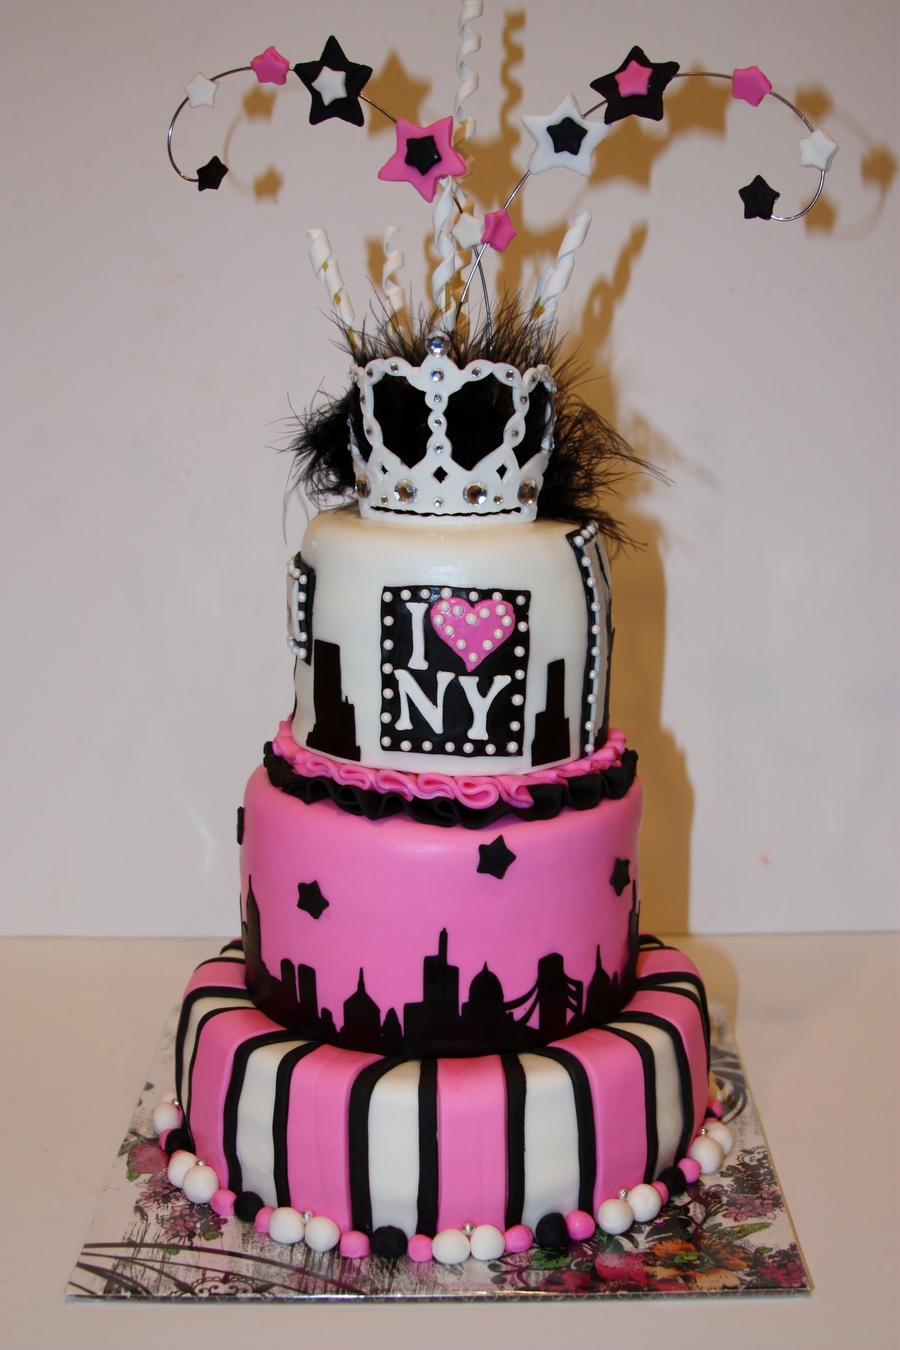 Superb New York City Themed Sweet 16 Cake Cakecentral Com Birthday Cards Printable Riciscafe Filternl